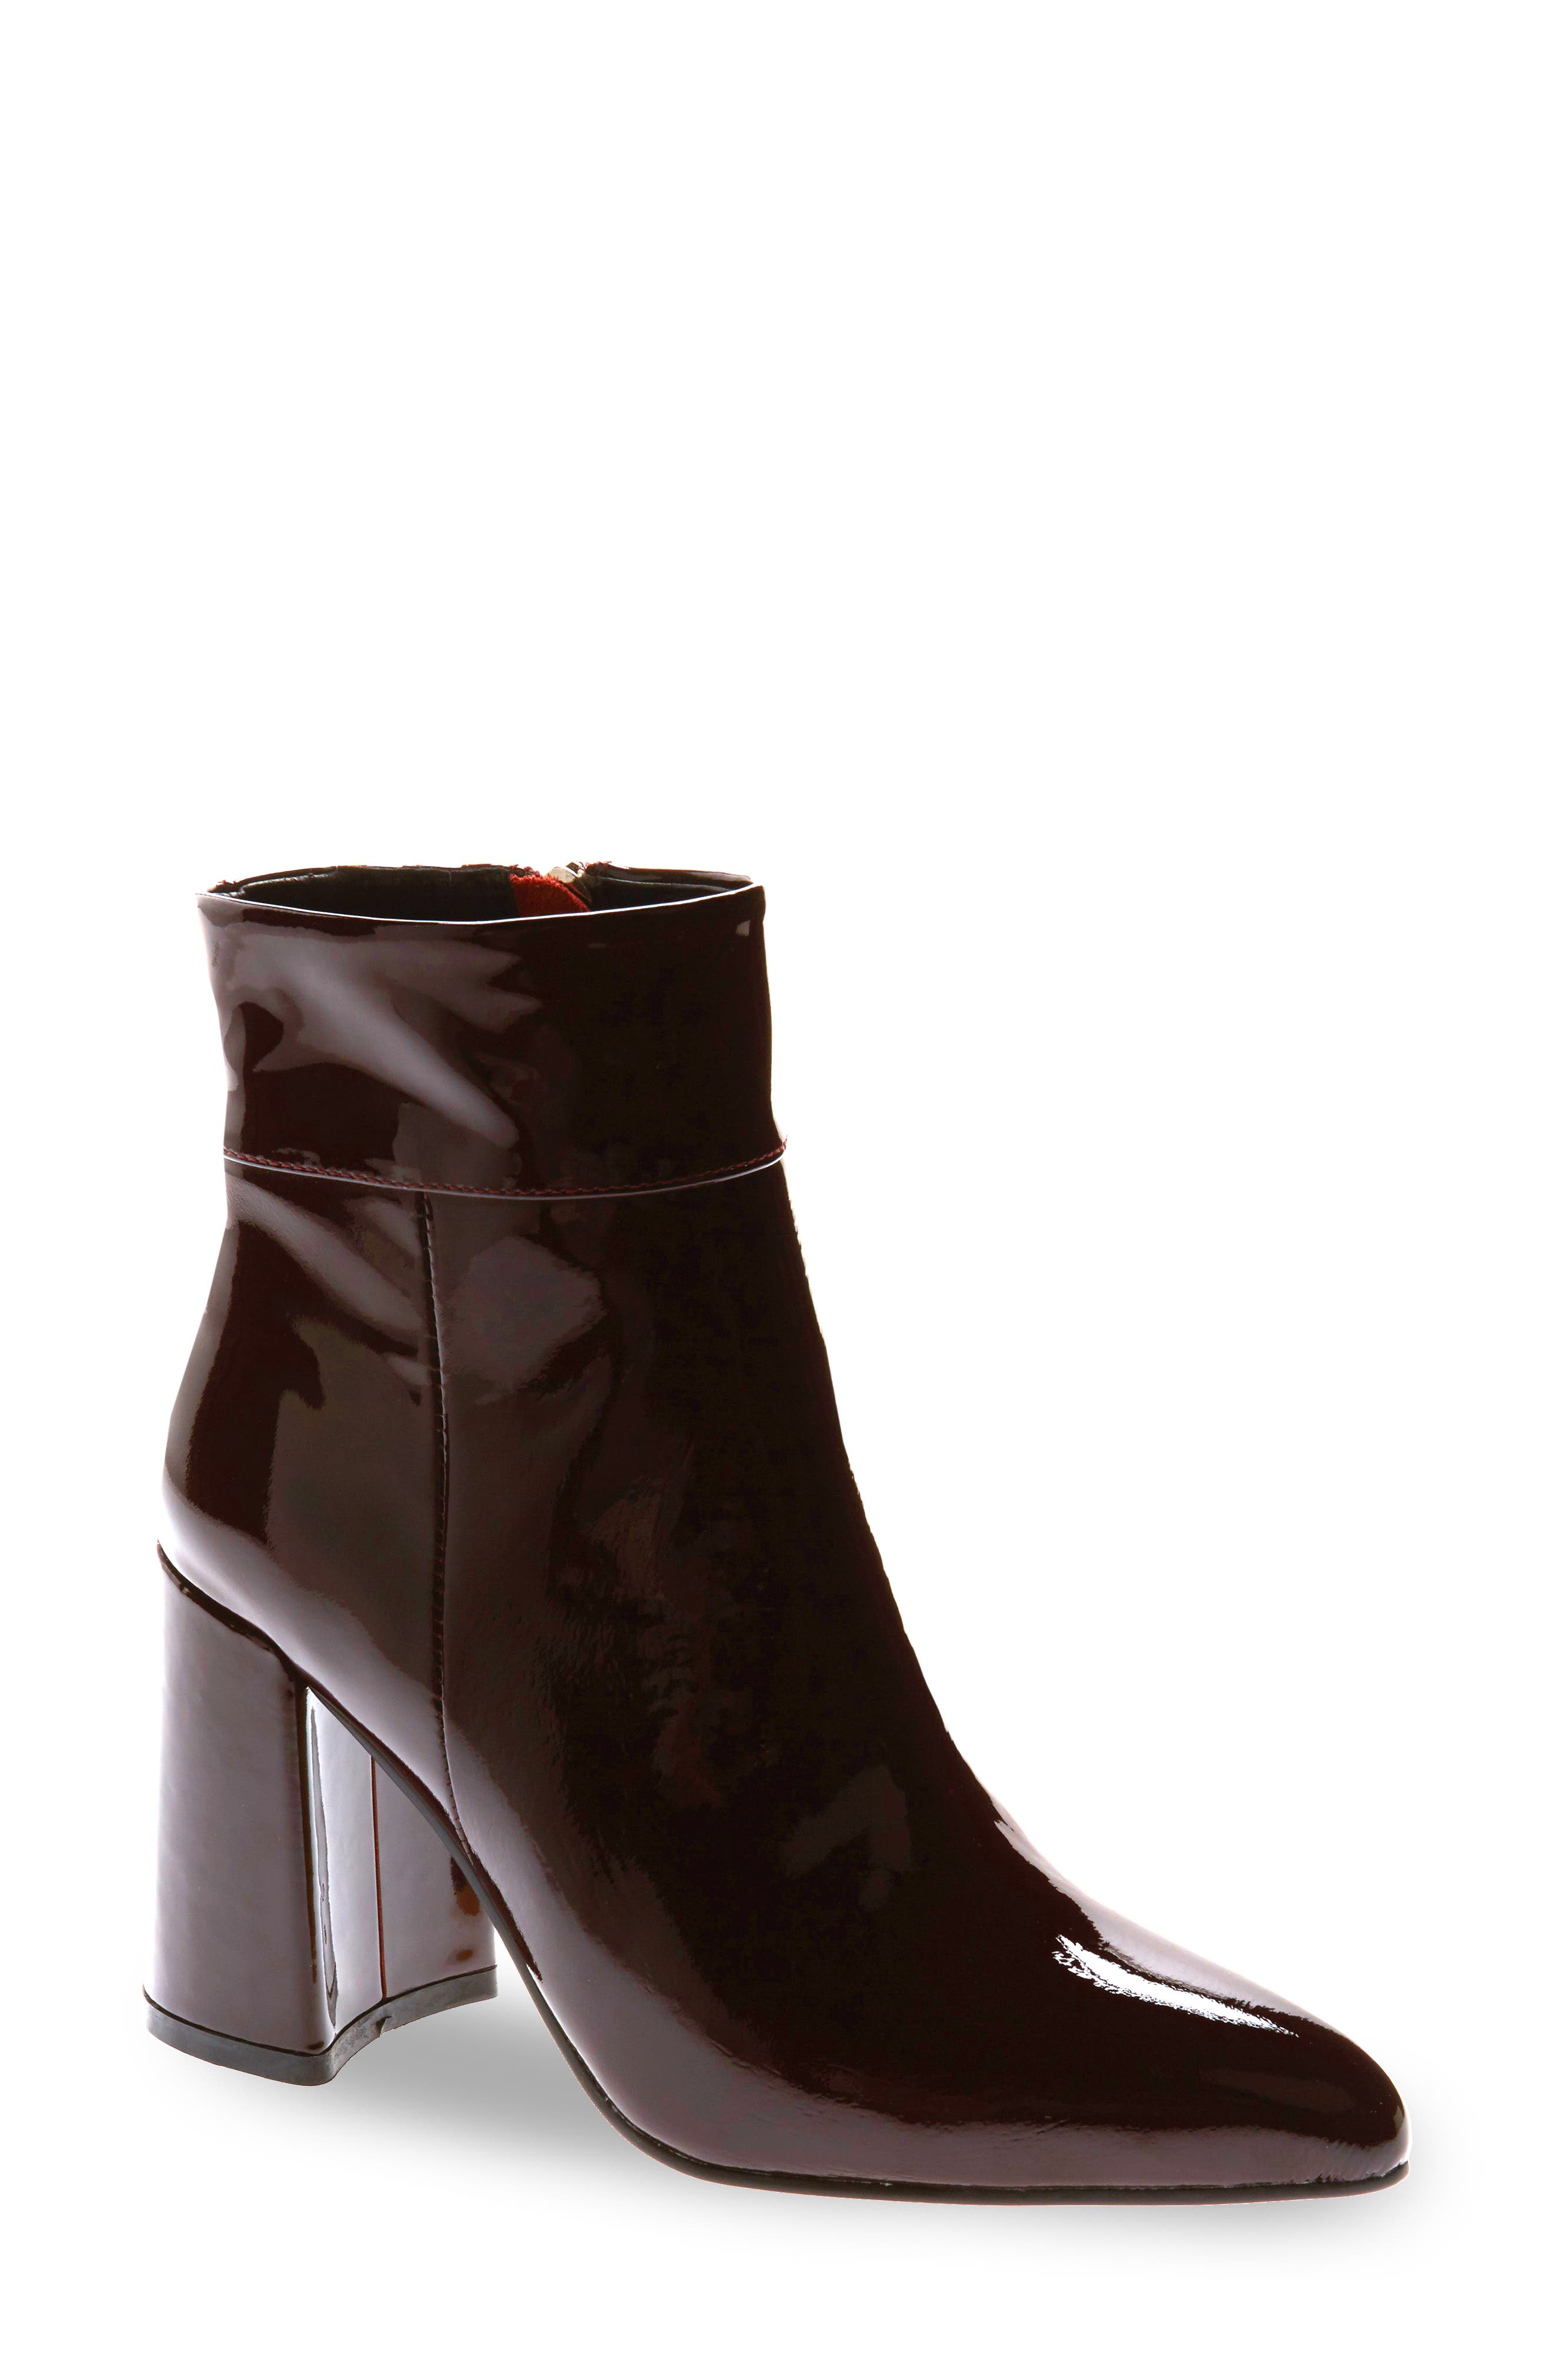 ALIAS MAE Beth Bootie in Burgundy Patent Leather